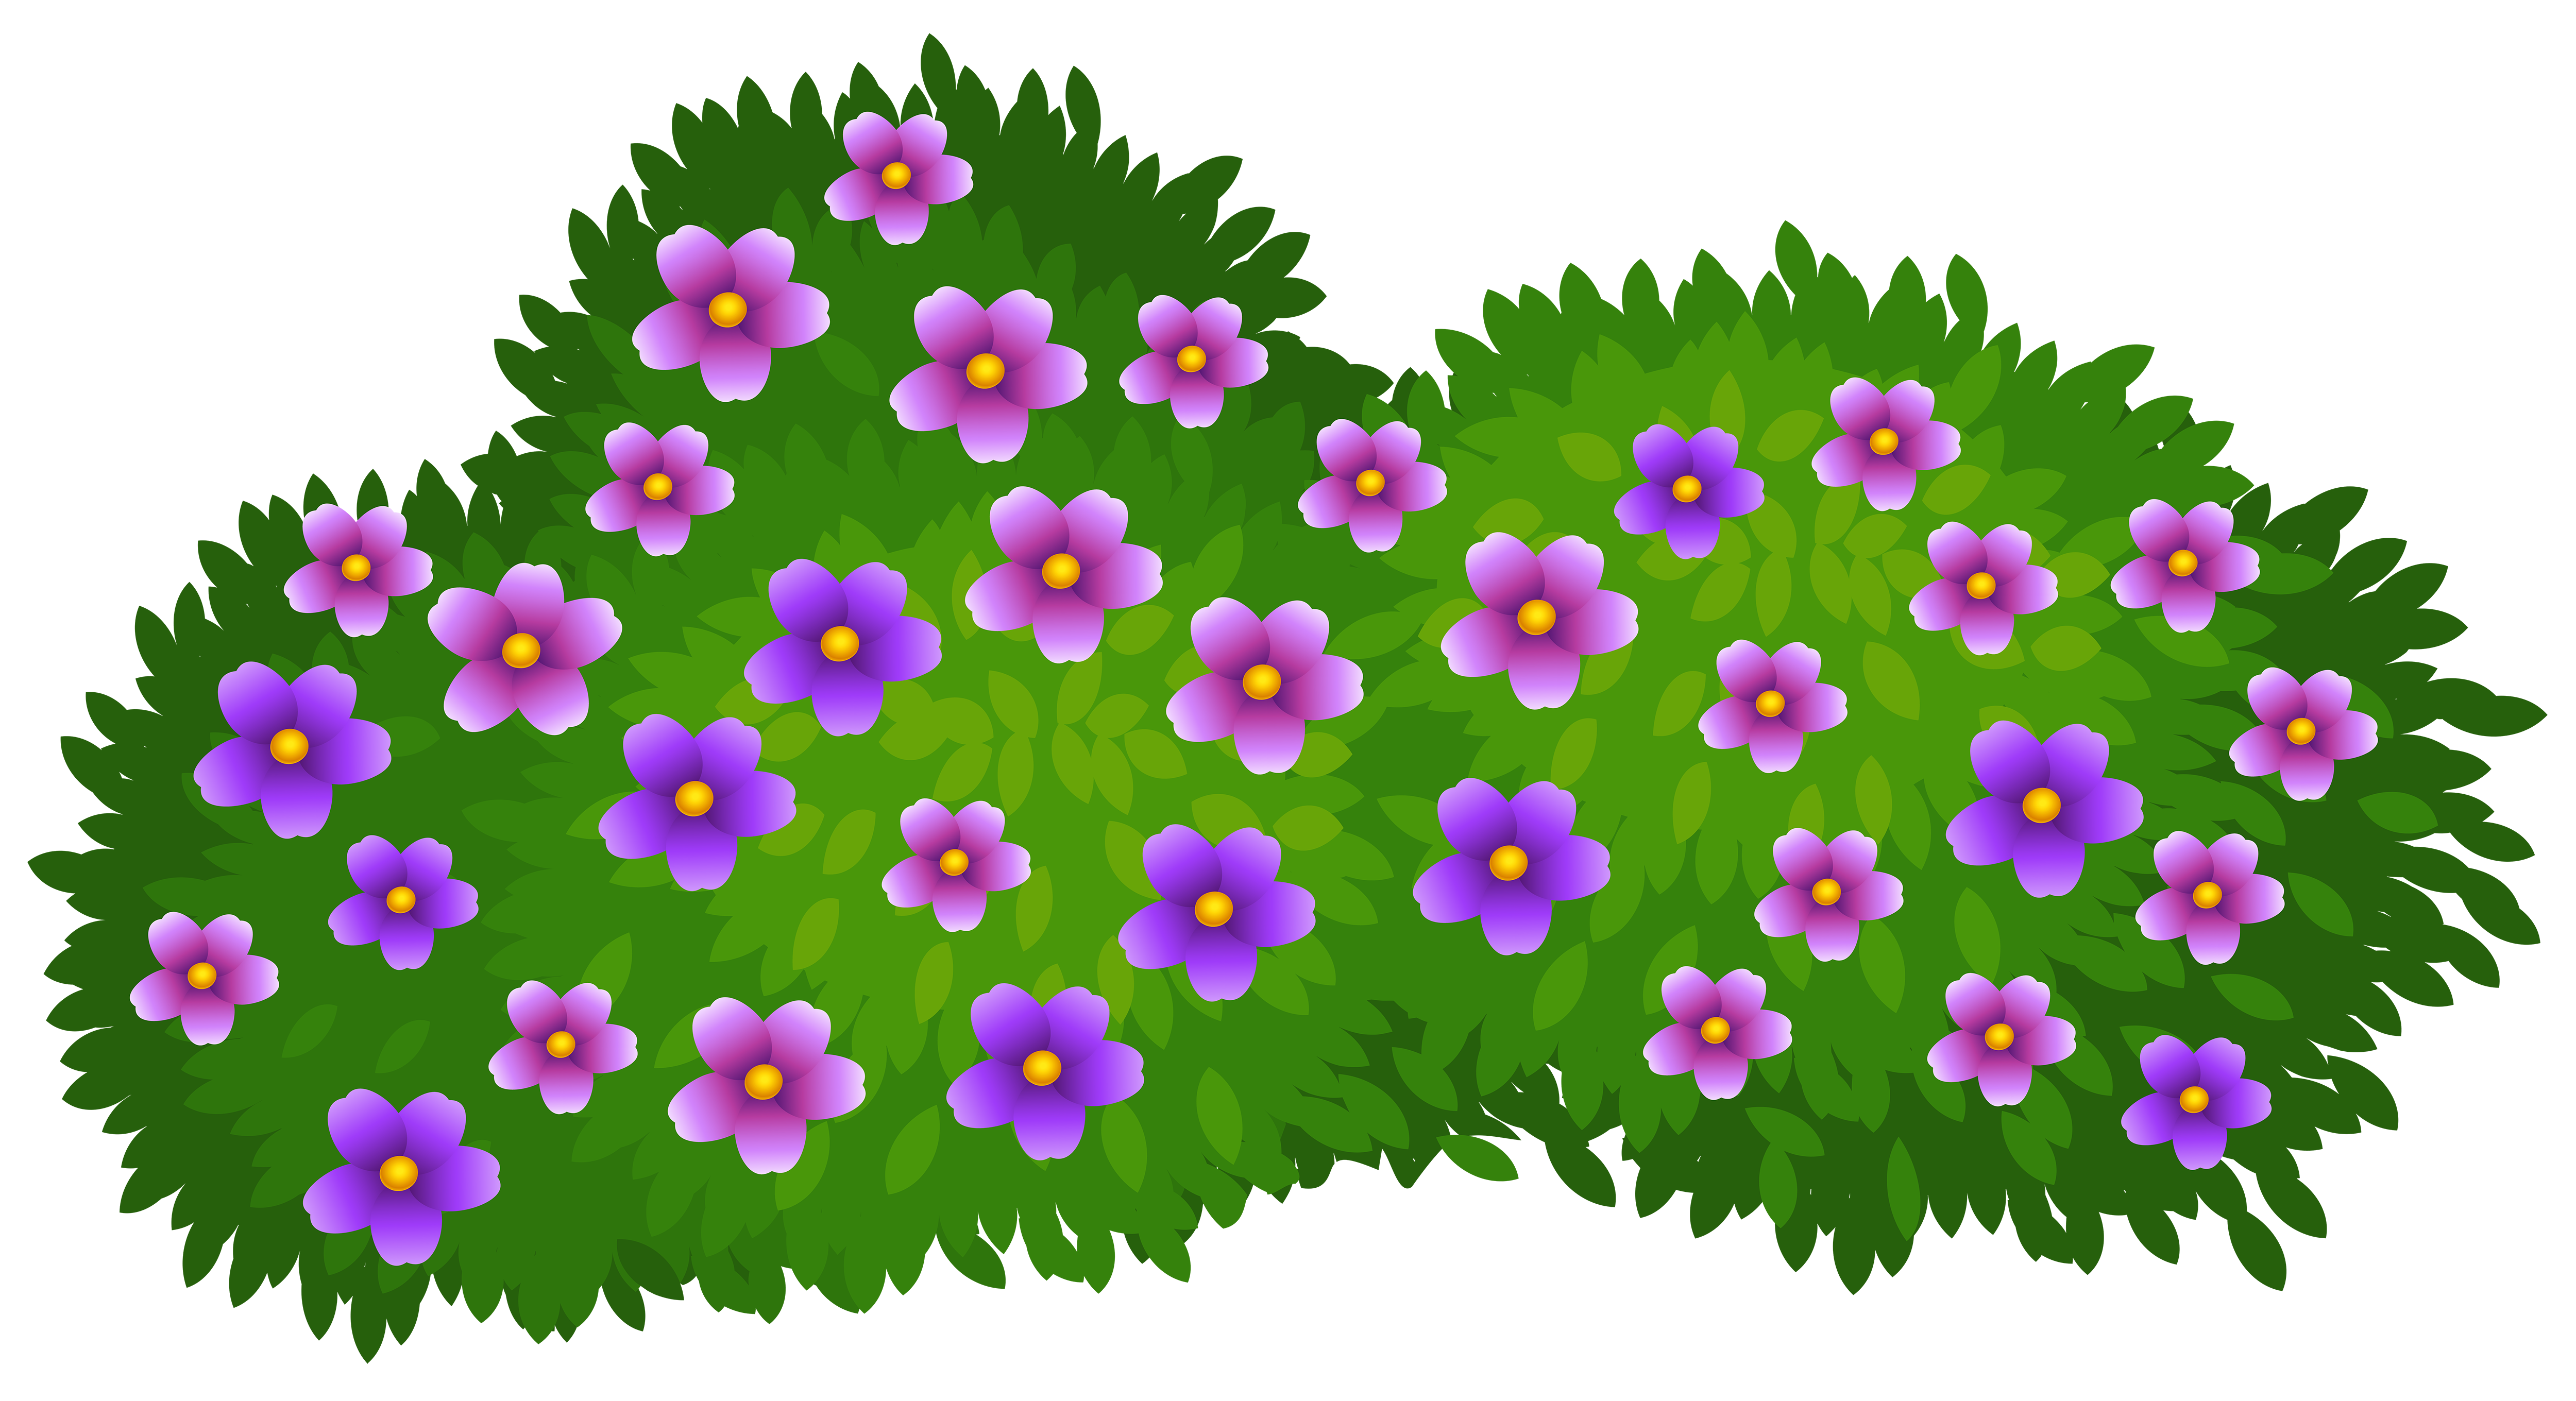 Free Shrub Top View Png, Download Free Clip Art, Free Clip.